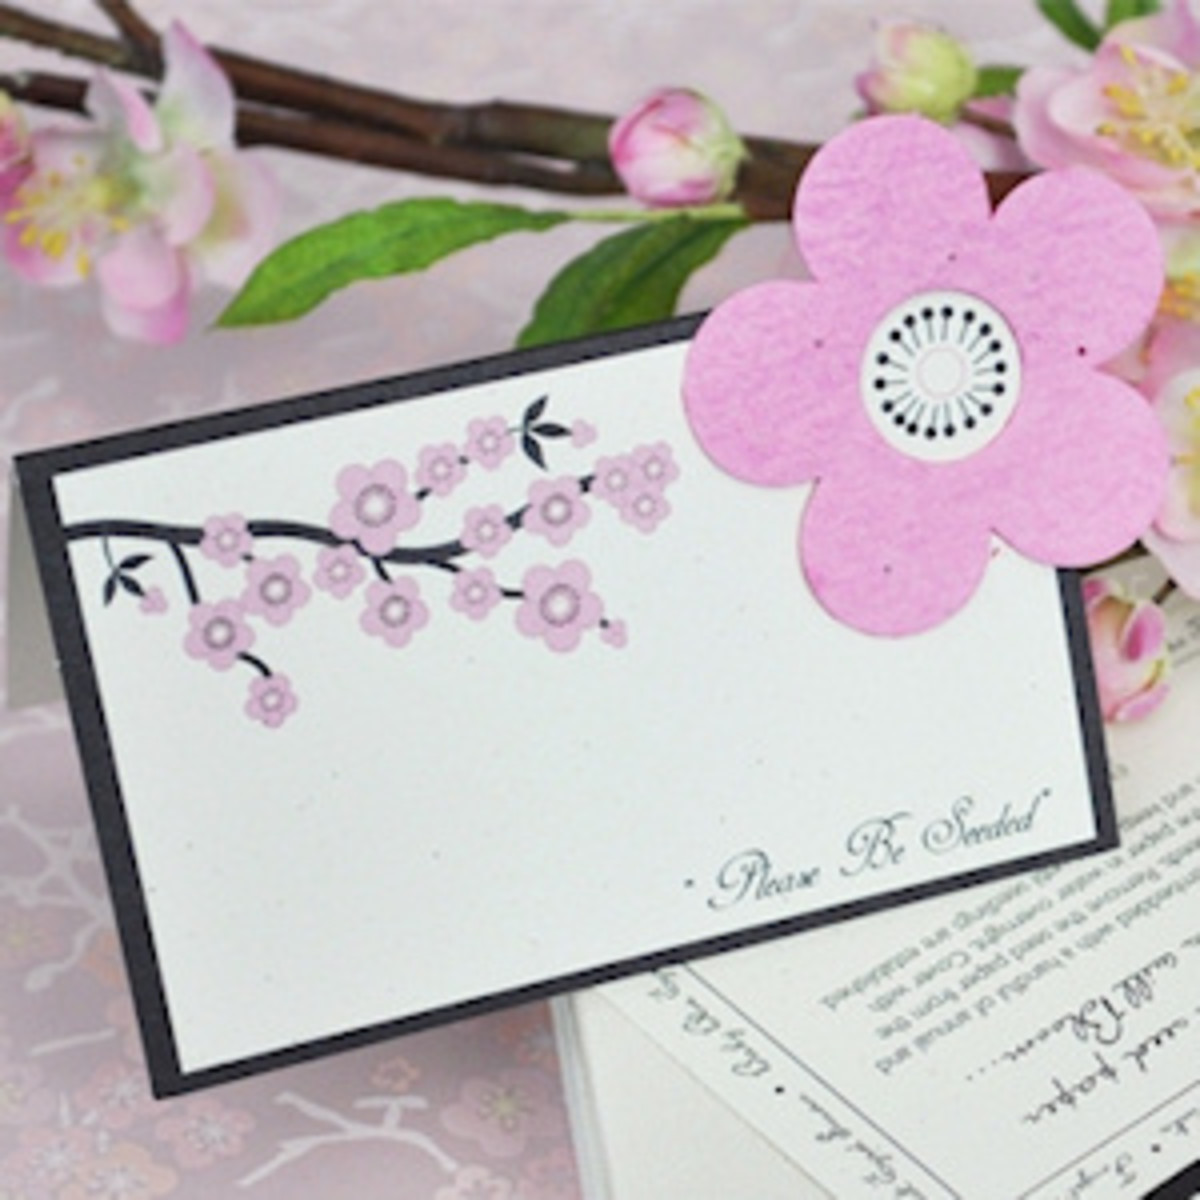 Cherry Blossom place cards with plantable wildflower seeds.